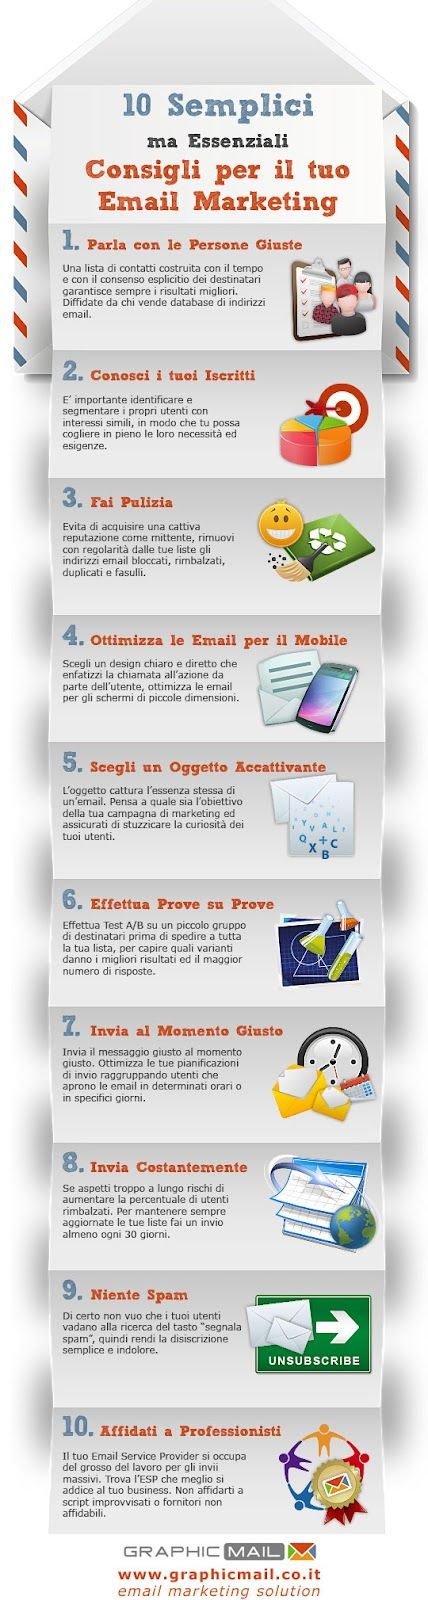 10 semplici Consigli per il Tuo Email marketing #infografica #infographic #uplink www.uplink.it